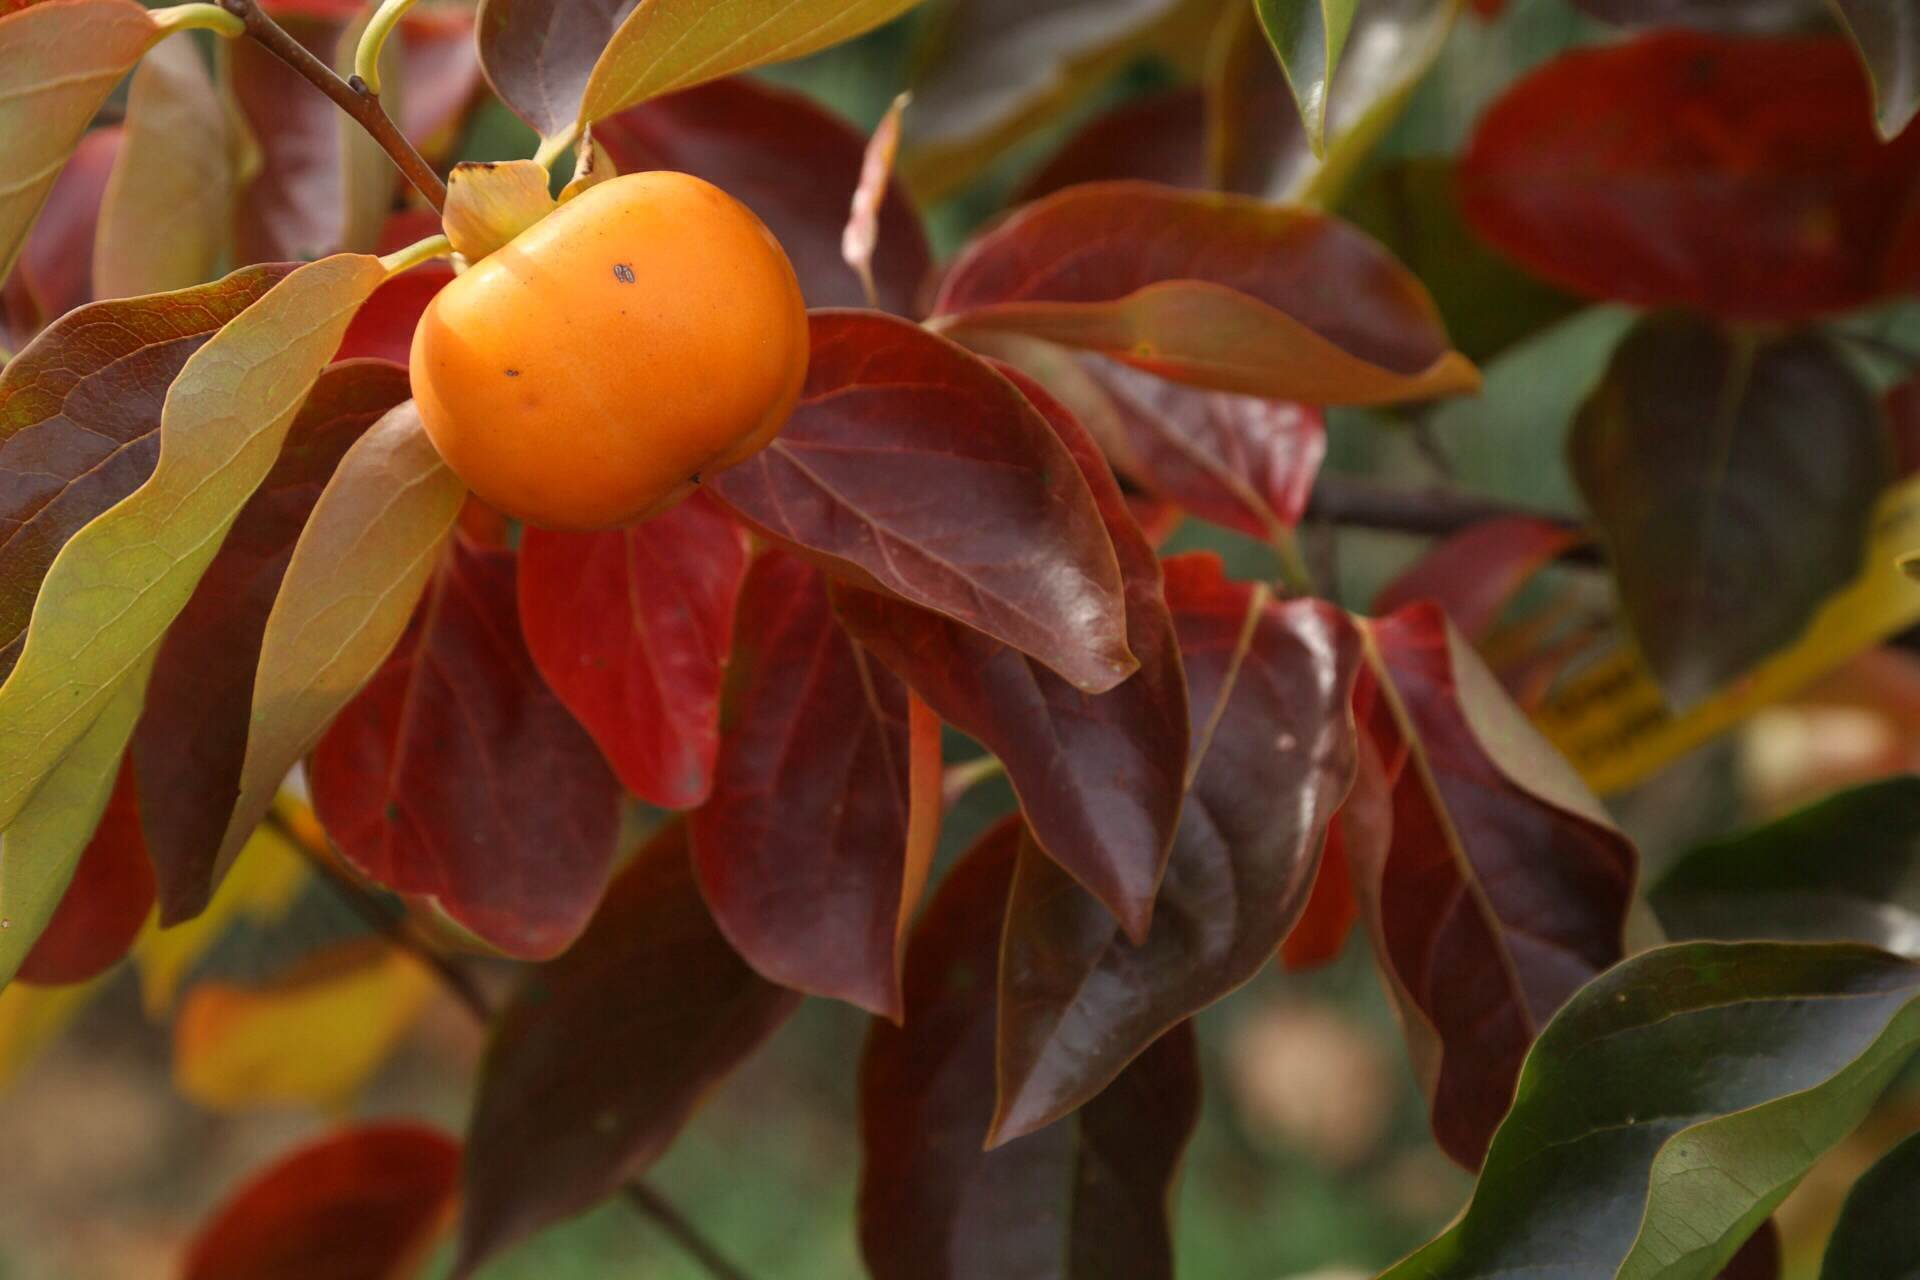 'Great Wall' Asian persimmon with shades of foliage. Once the leaves drop the orange fruit will continue to hang on the tree up through early winter.